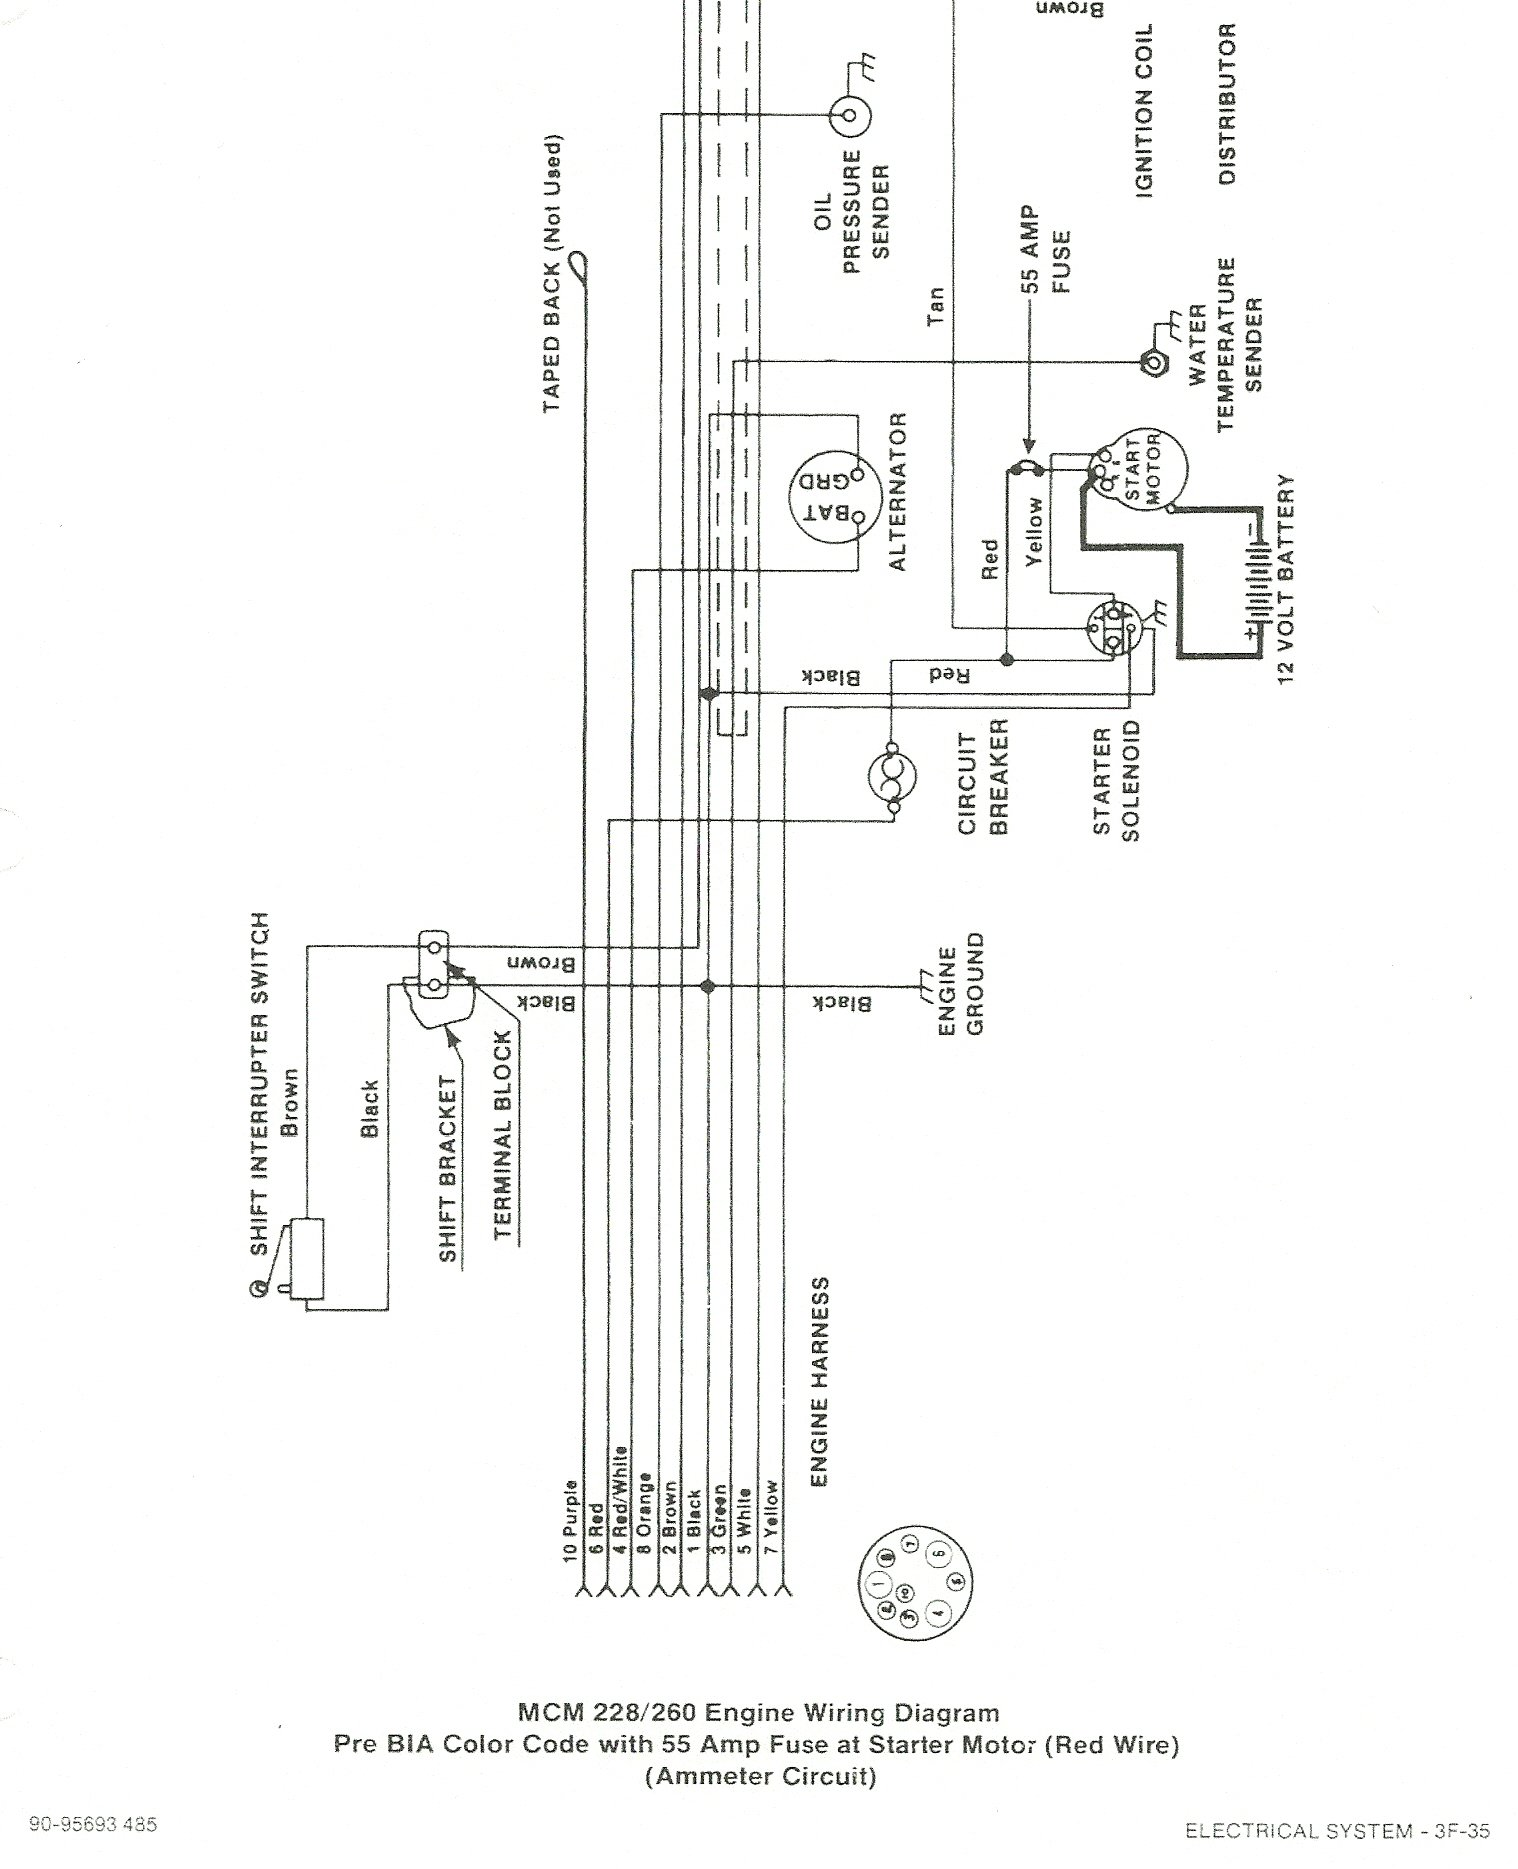 5 7 Mercruiser Engine Wiring Diagram | Find image  Marine Wiring Diagrams on